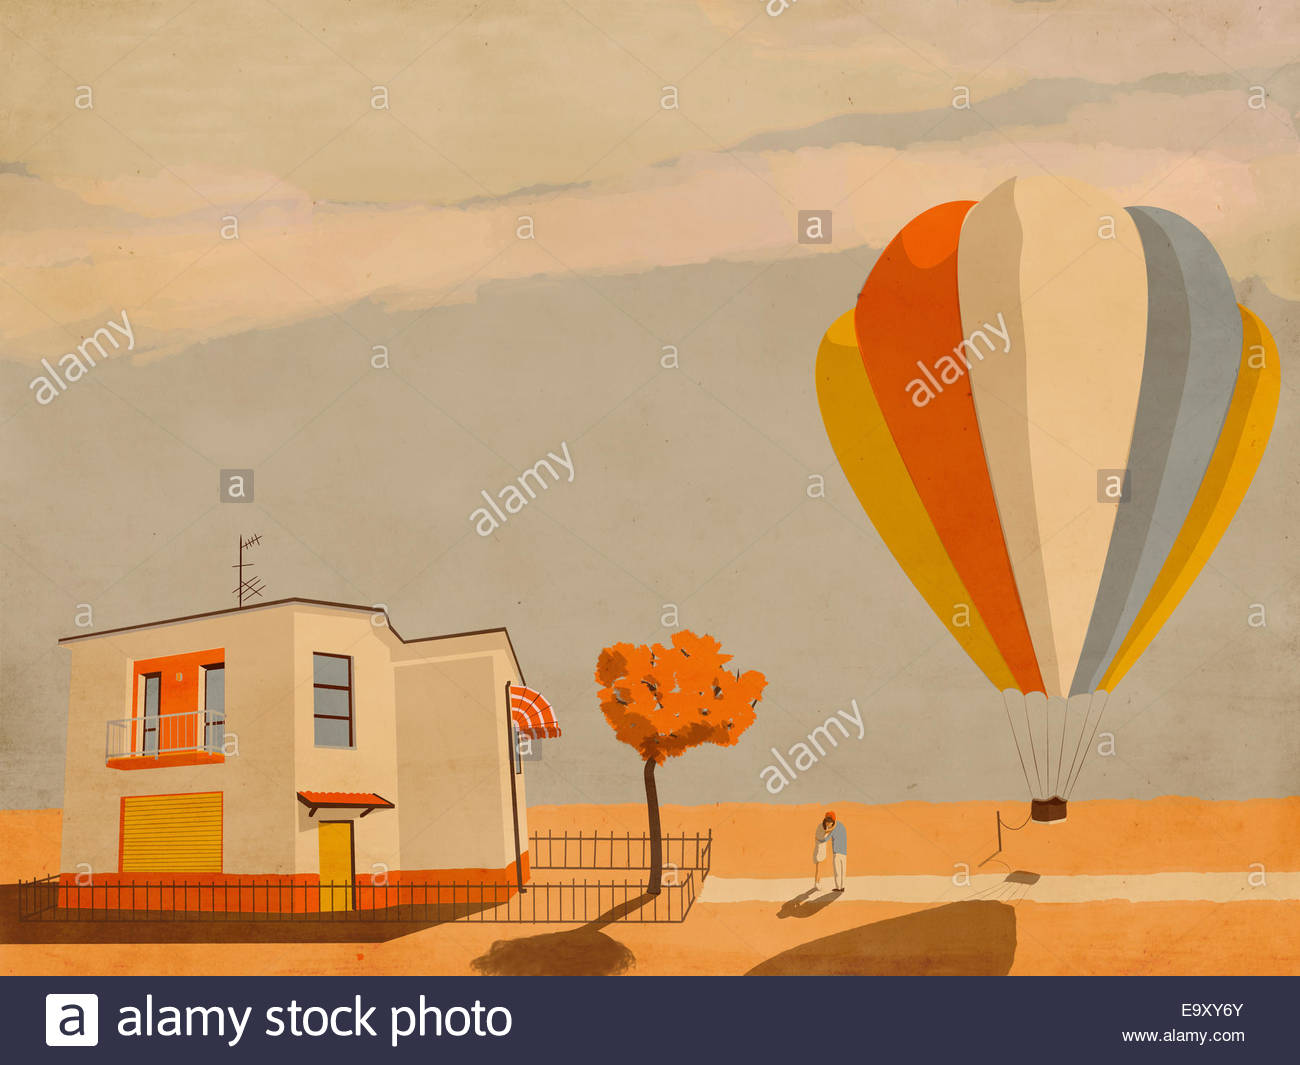 Couple hugging goodbye beside tethered hot air balloon - Stock Image